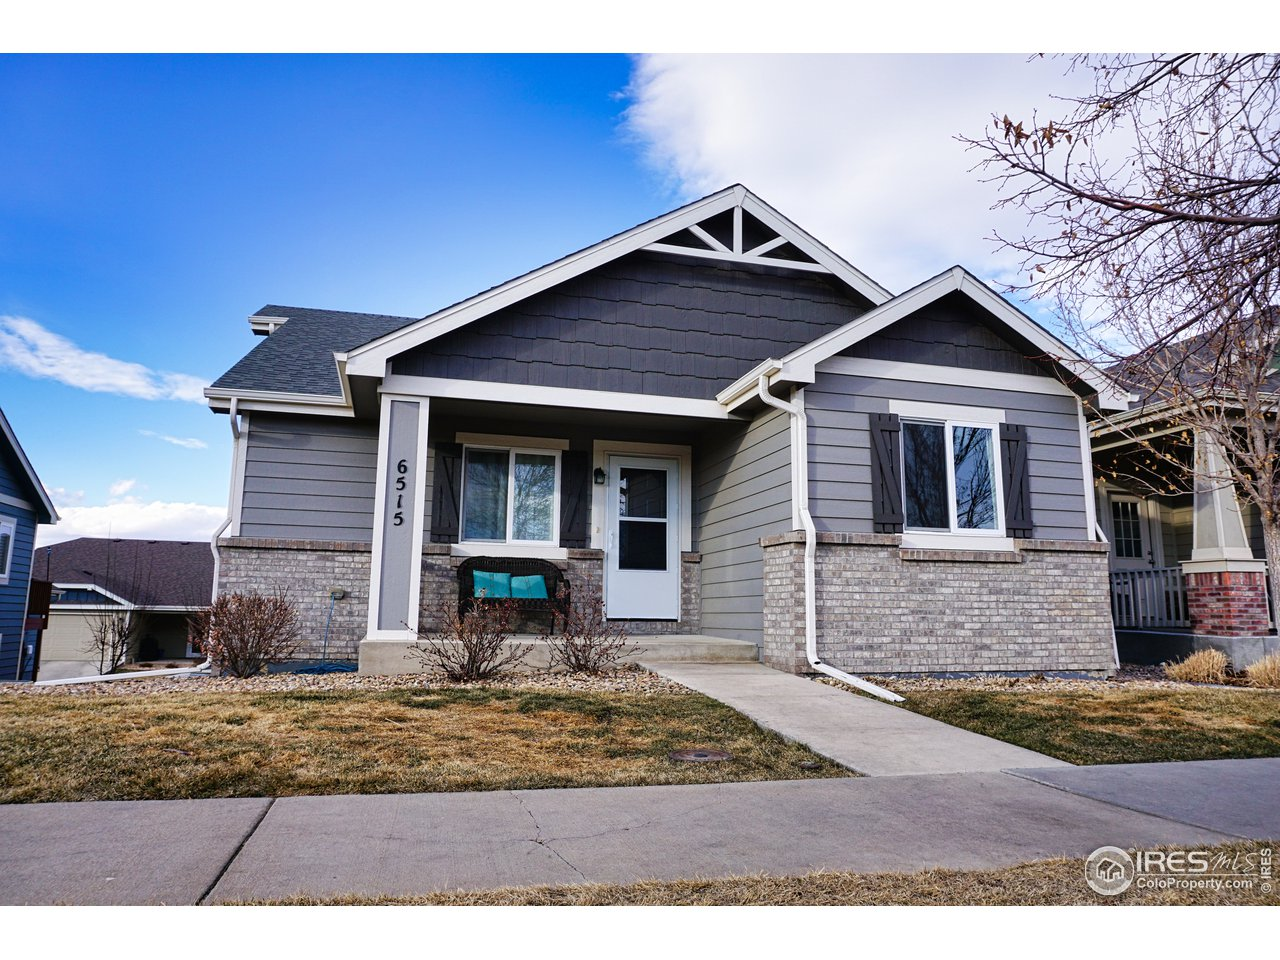 6515 19th St, Greeley CO 80634